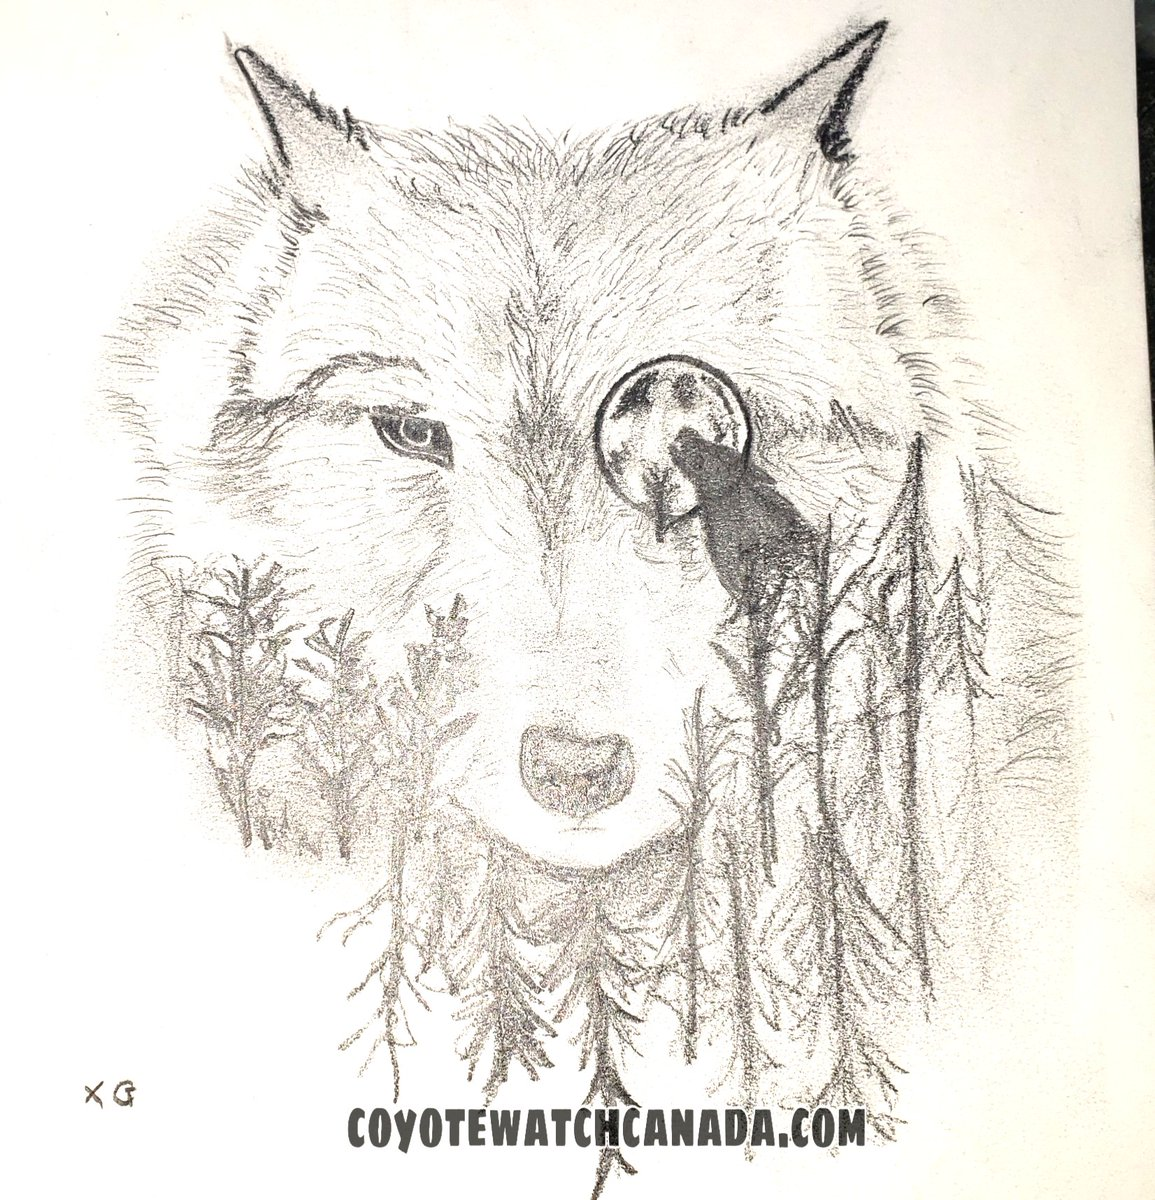 ~Wild Wednesday~ 'My Coyote Wolf Kin' -Artist Liliana G. age 14, pencil sketch- (CWC Canid Response Team Youth Volunteer)  See Coyote Watch Canada's message to our universal community  https://www.facebook.com/190725894273521/posts/3153592141320200/ …  #natureliteracy #shareyourcreativity #art #fauna #StaySafeStayHomepic.twitter.com/hr2J6UpxPP